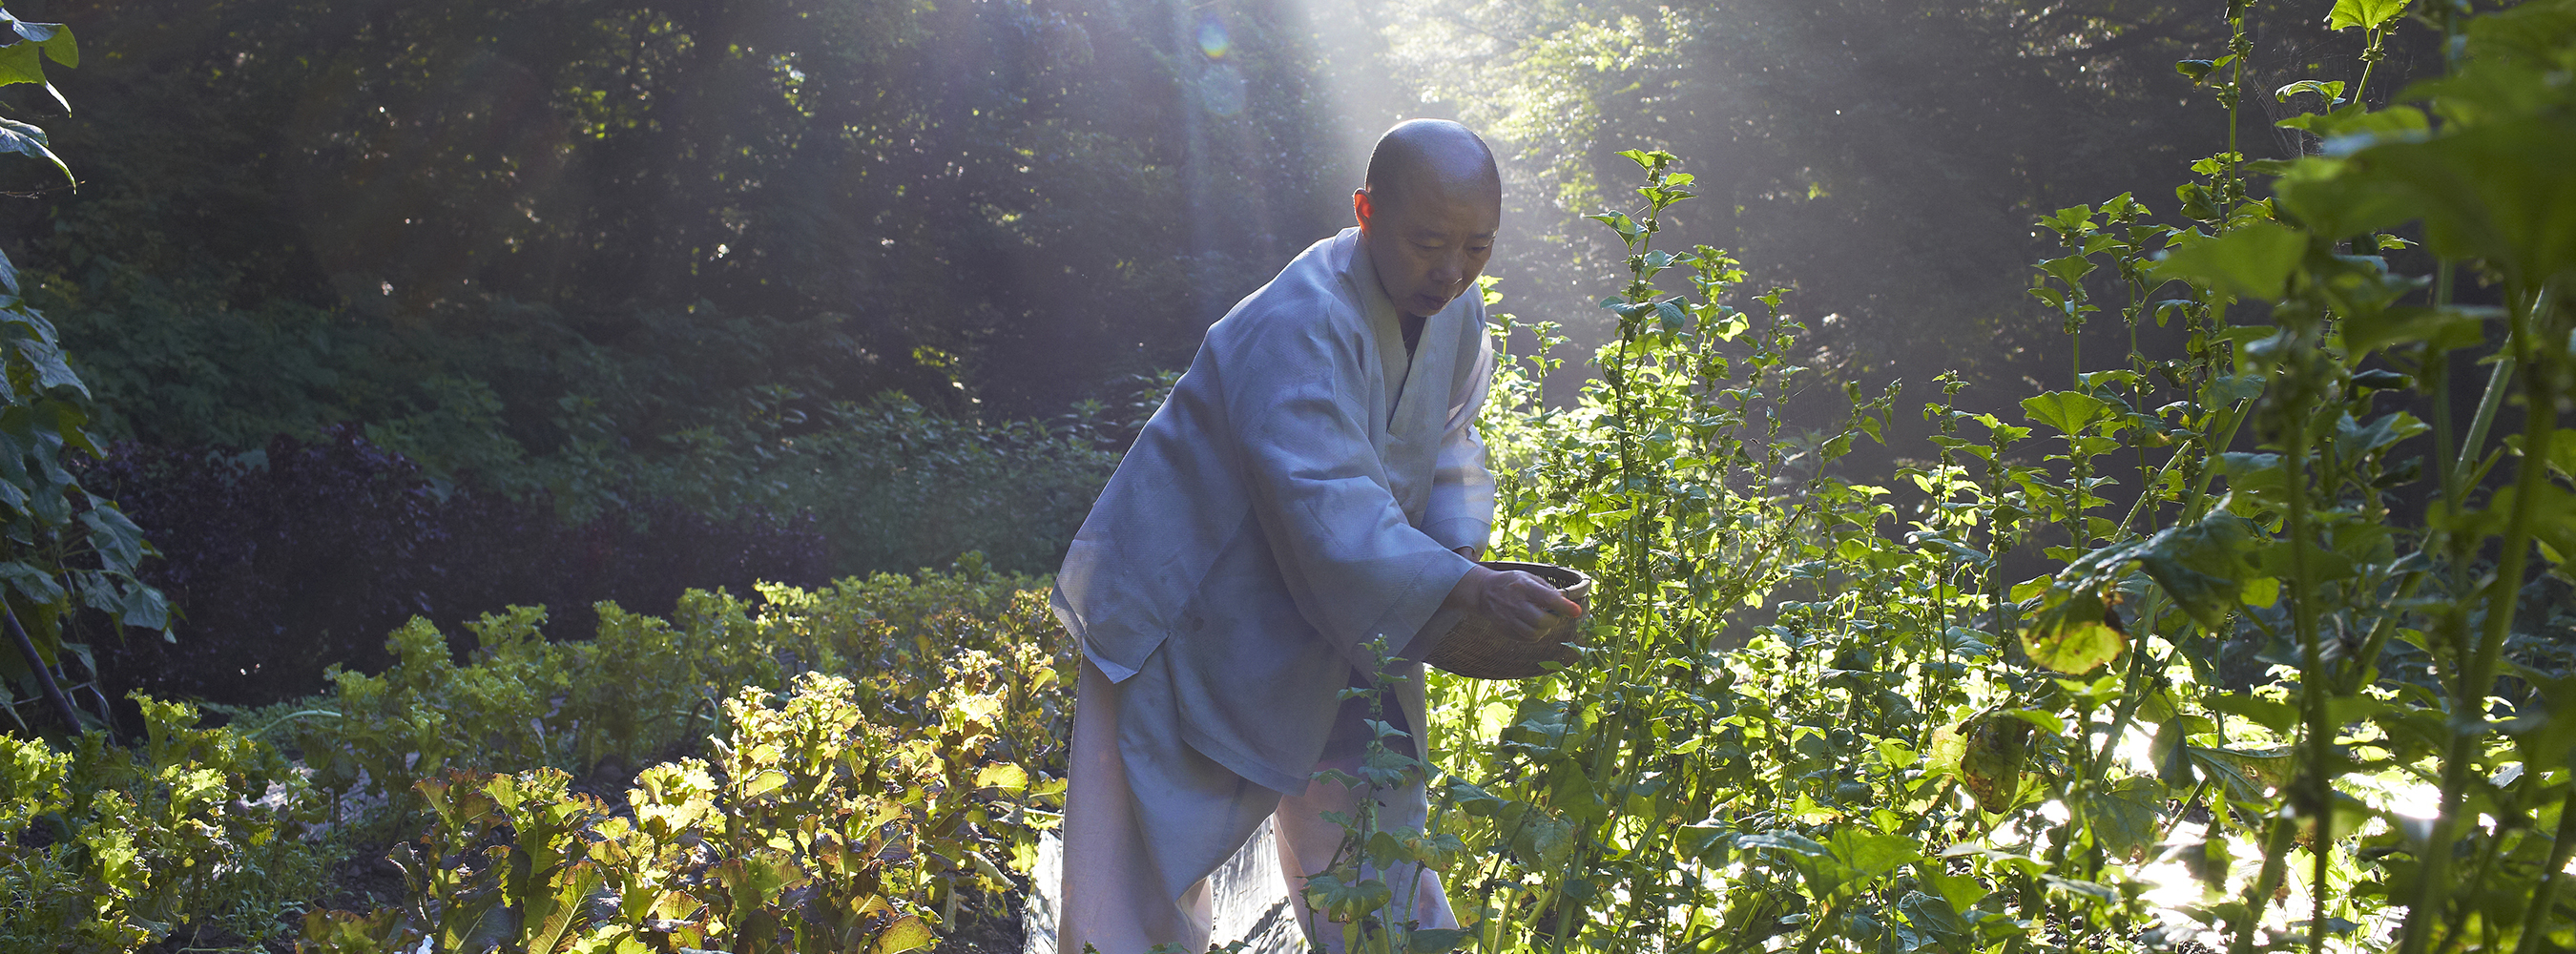 Banner image of a monk in a garden